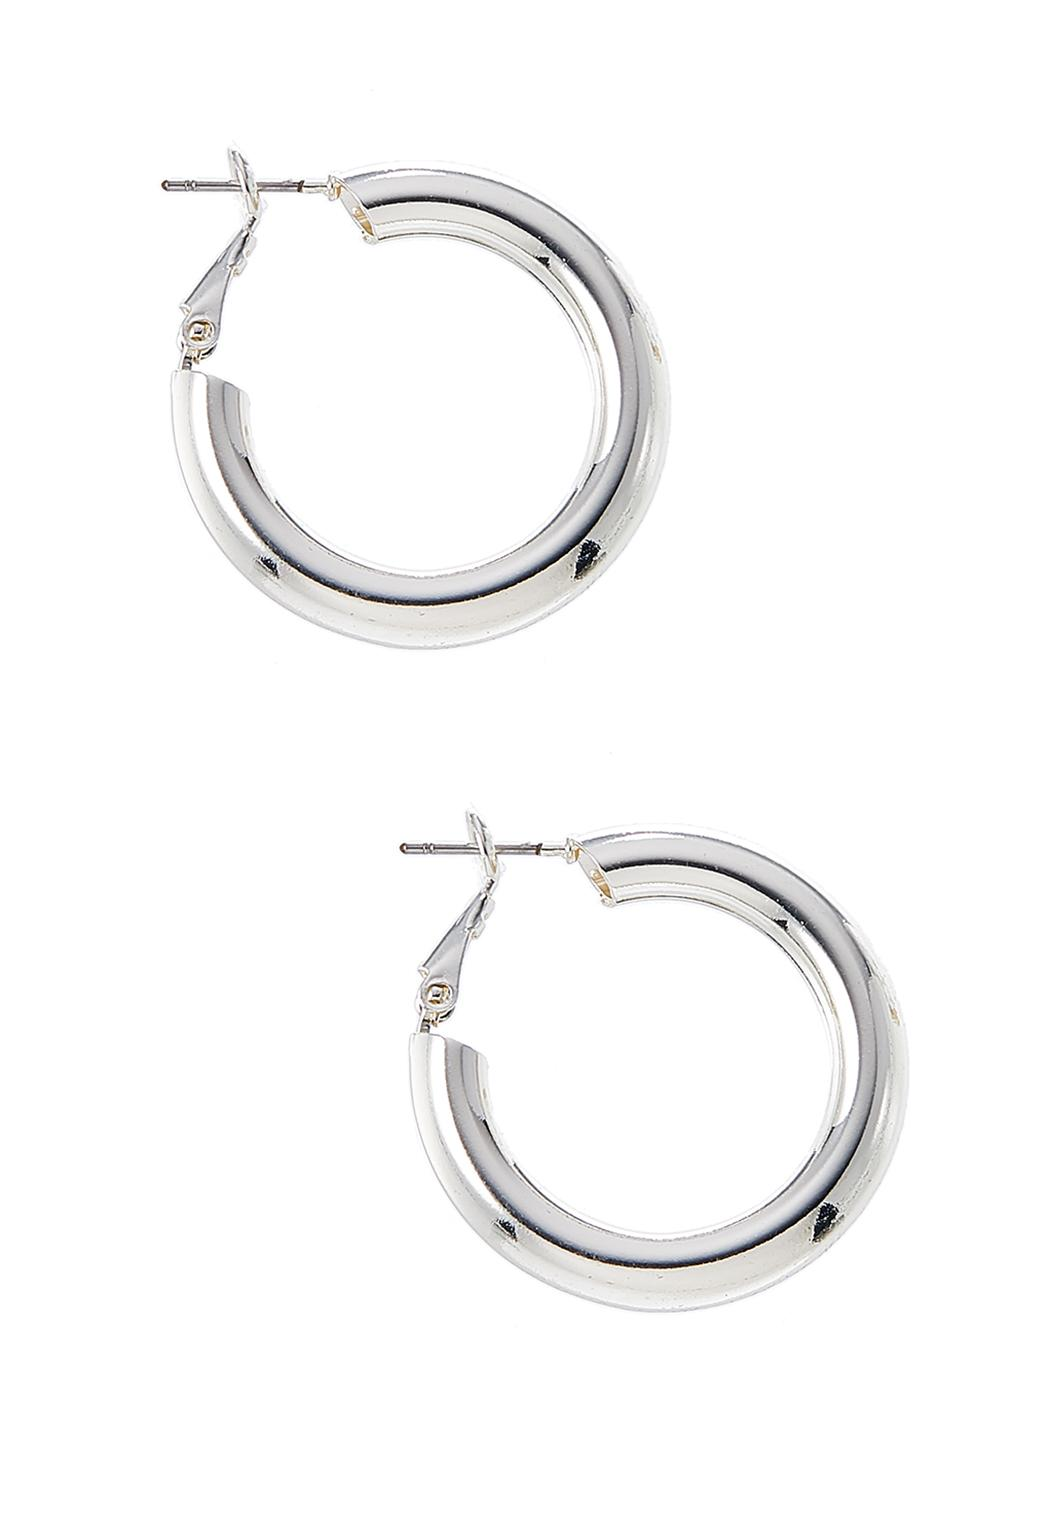 Chunky Silver Hoop Earrings